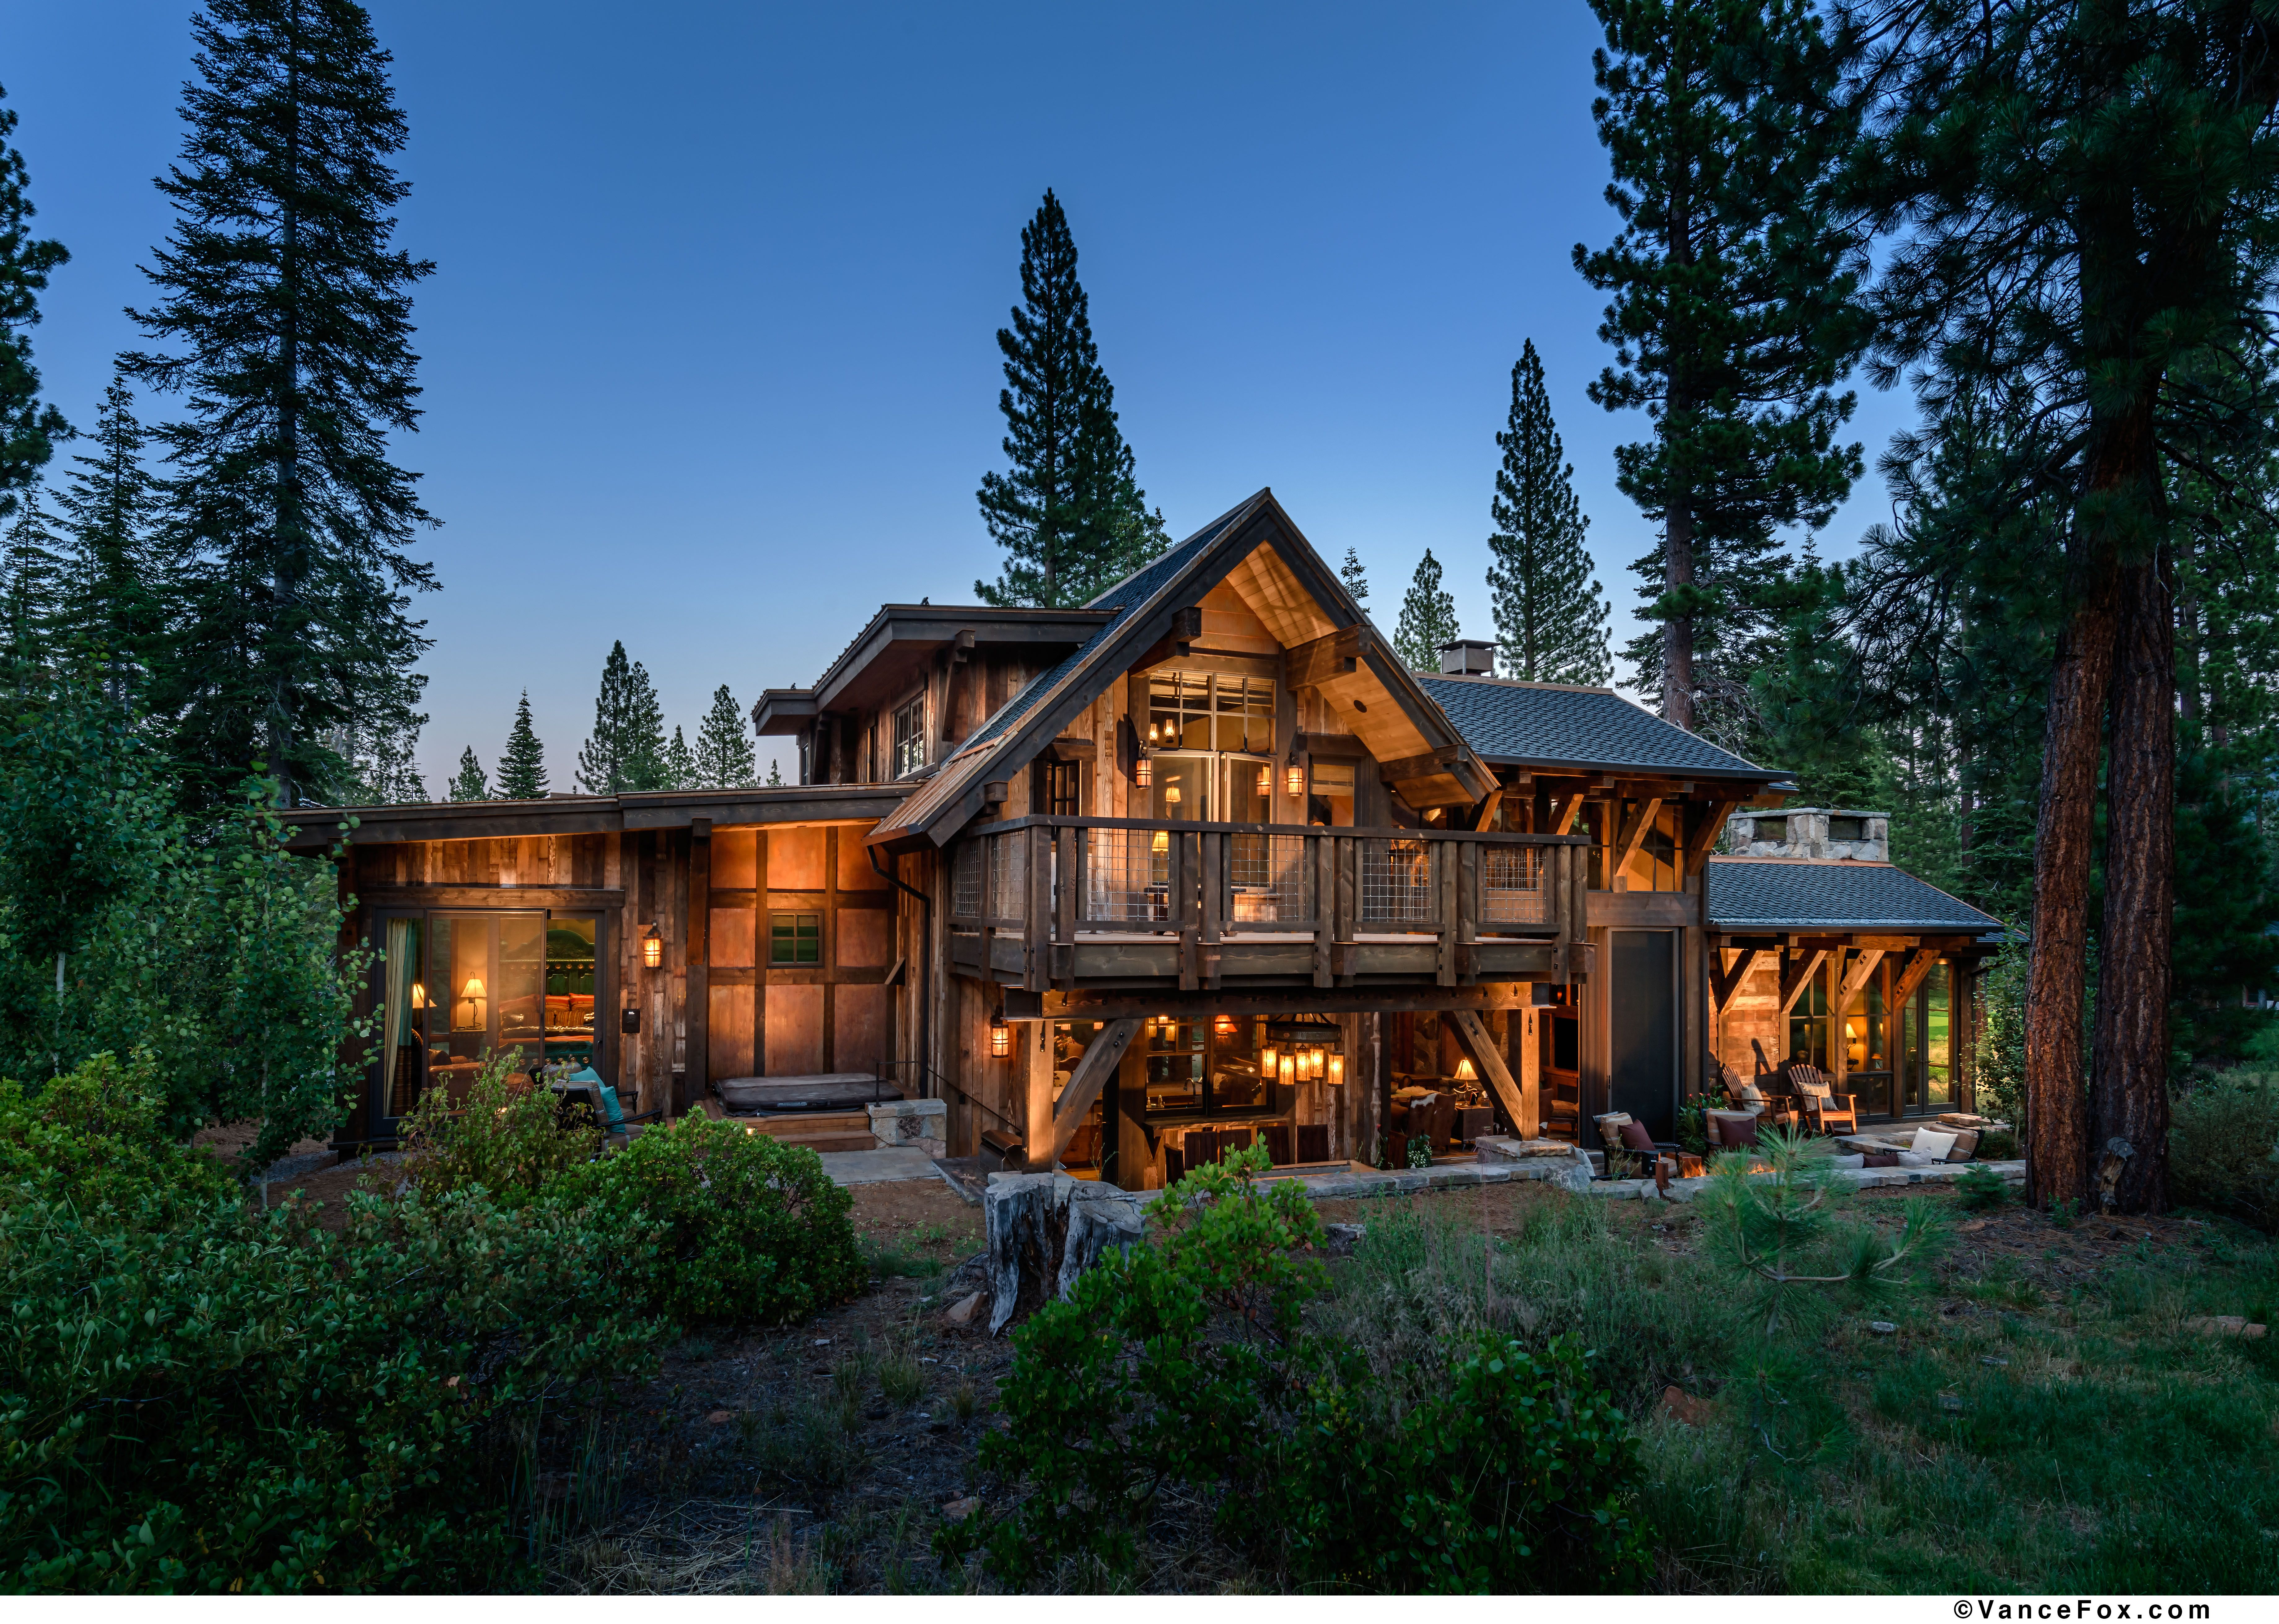 family to making one the view rewards lake a elk in cabins south best time at friends lot we put bedroom elkview luxury of effort with tahoe places is and cabin into spend